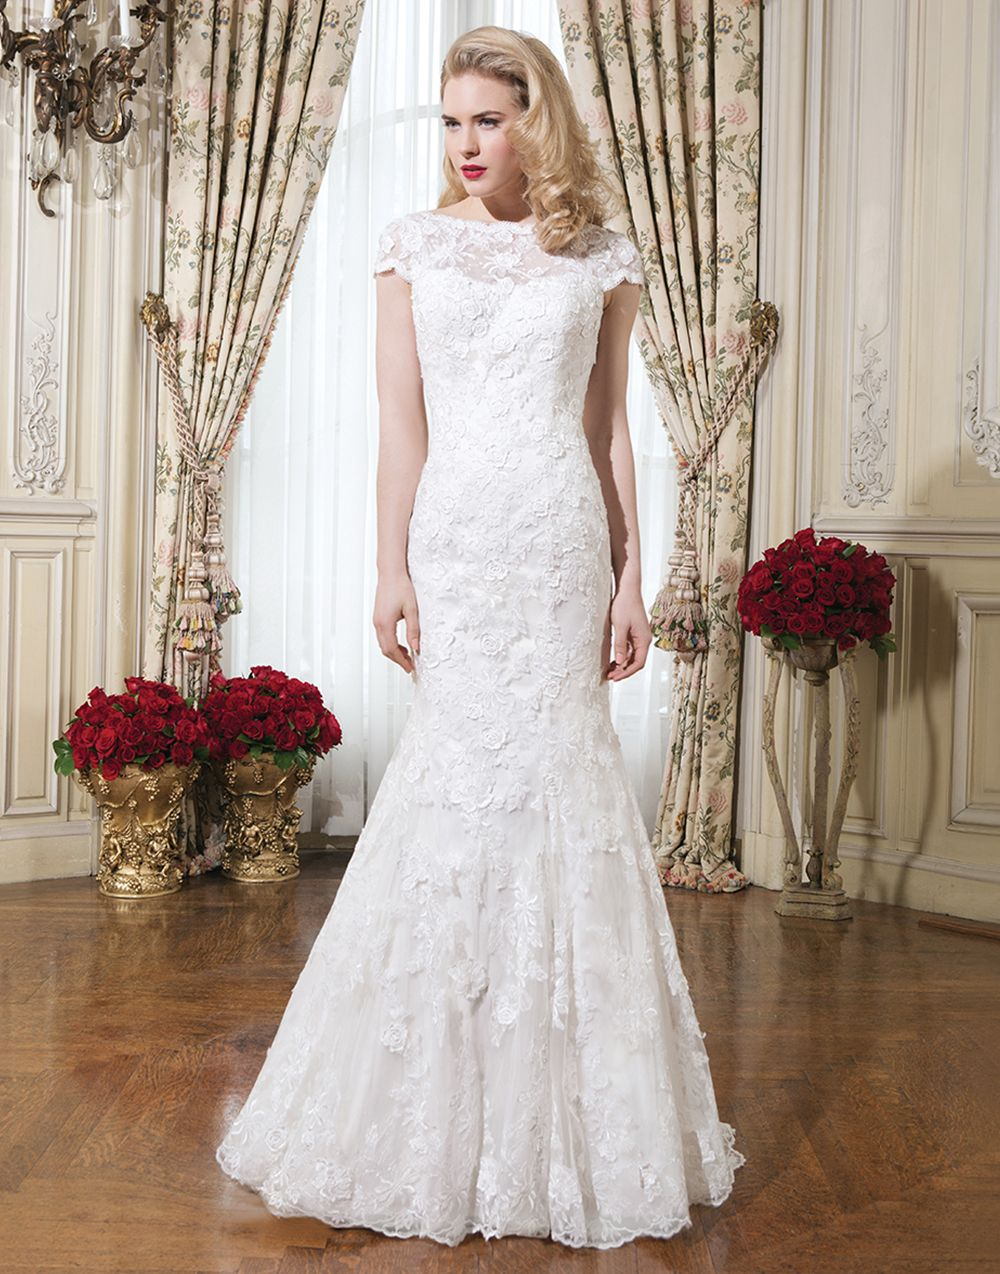 Justin Alexander Wedding Dresses Style 8754 Embroidered Lace Fit And Flare Dress Accented By A